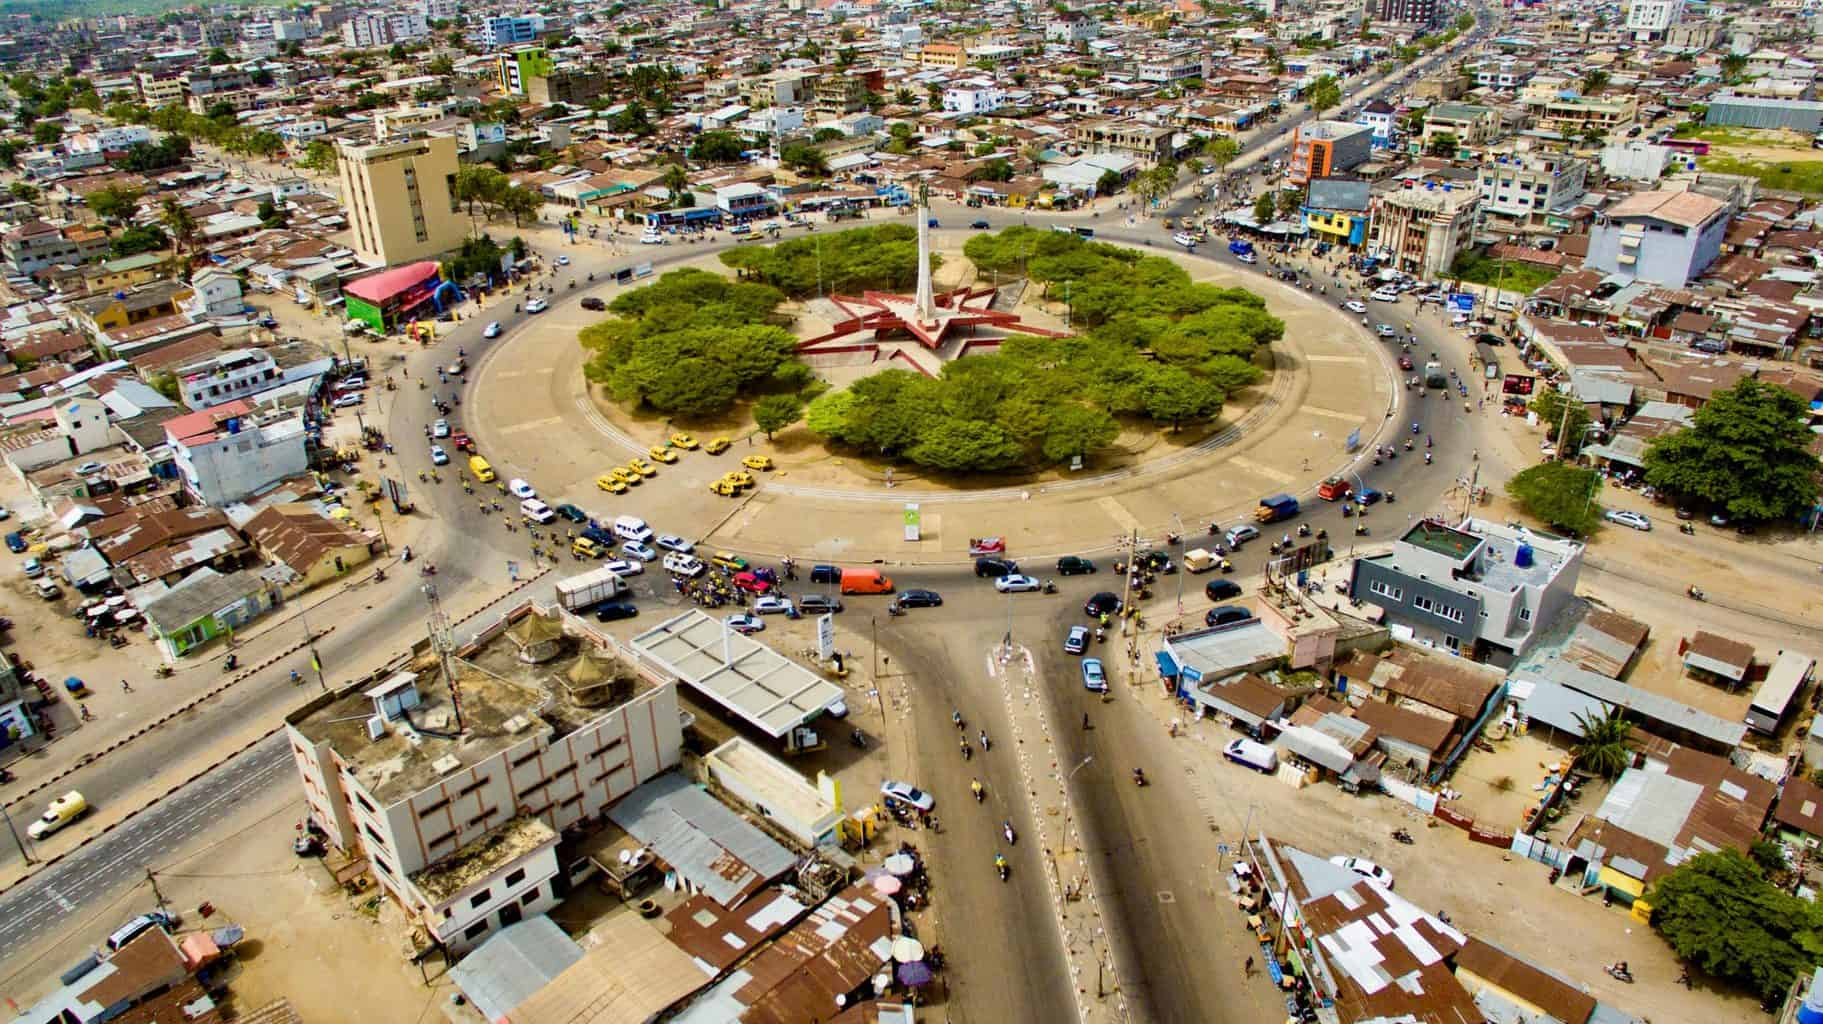 Benin as a regional leader: expanding fiscal transparency and inclusion during a time of crisis